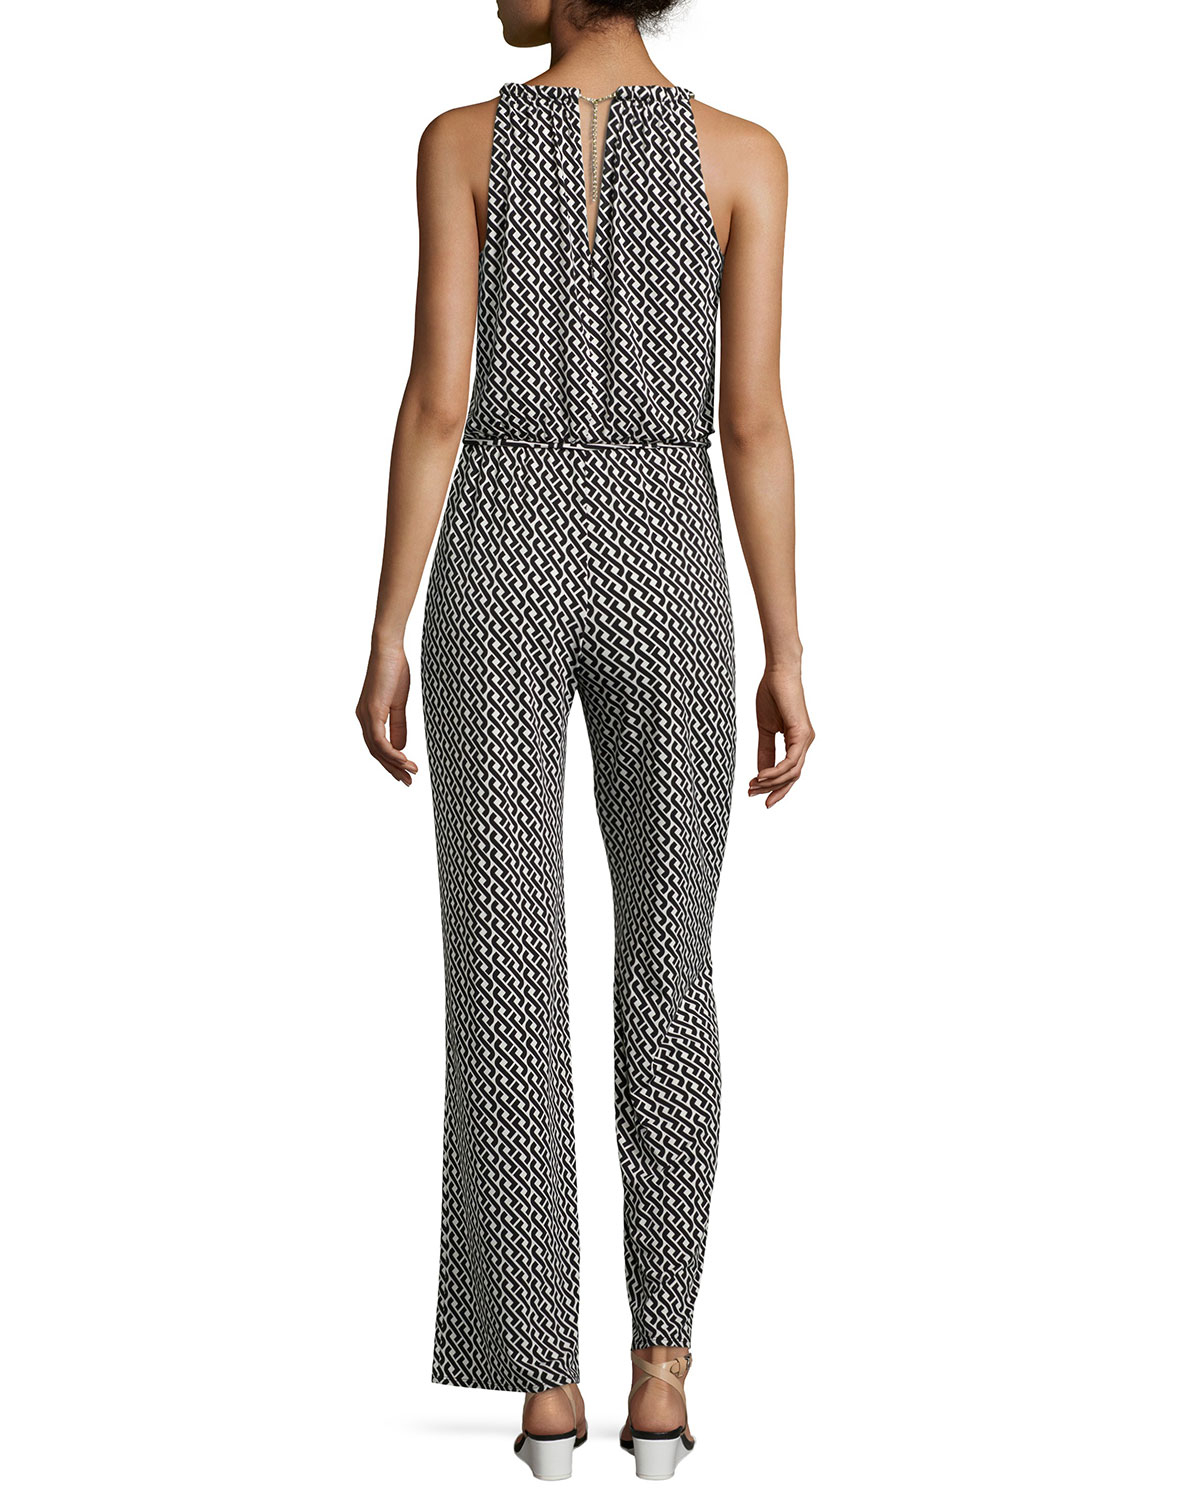 dd9c97713d8 Lyst - Laundry by Shelli Segal Geo-Print Chain-Neck Jumpsuit in Black